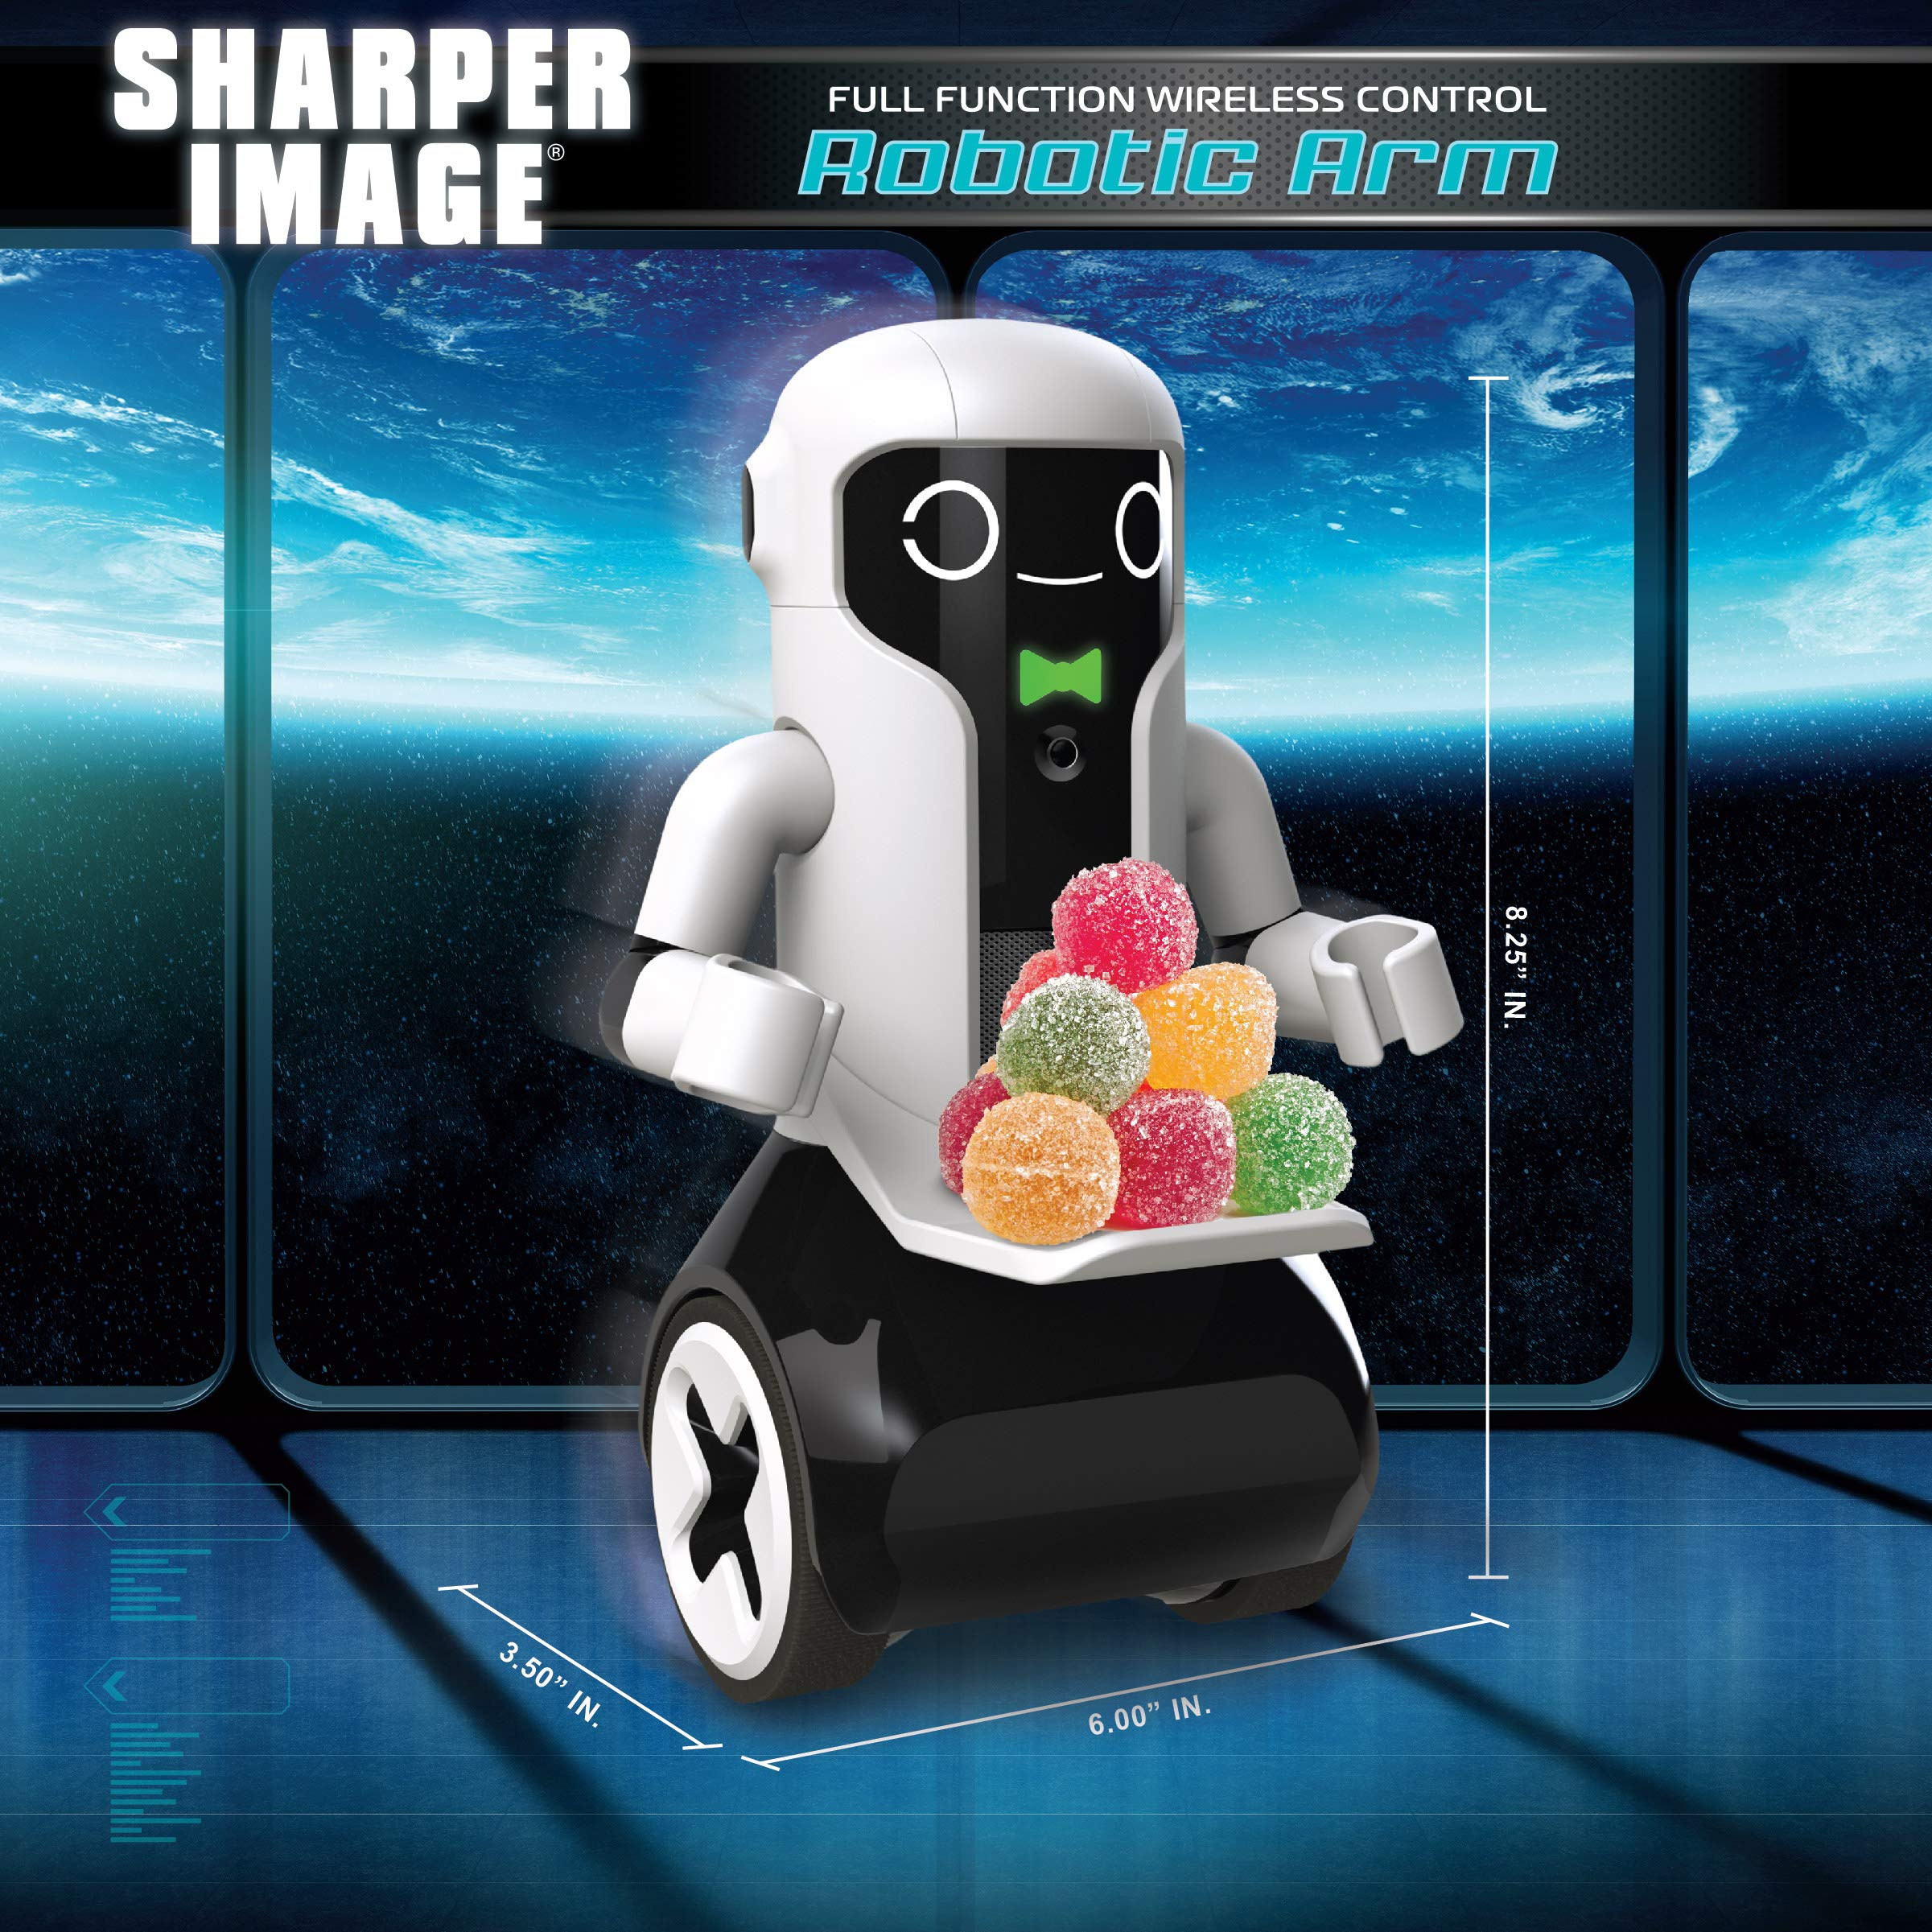 Sharper Image Maximilian The RC Butler Bot, Interactive Remote Control Robot with Speech, Singing, Audio Recording, Motion Detection, Color-Coded Emotional Responses by Sharper Image (Image #4)